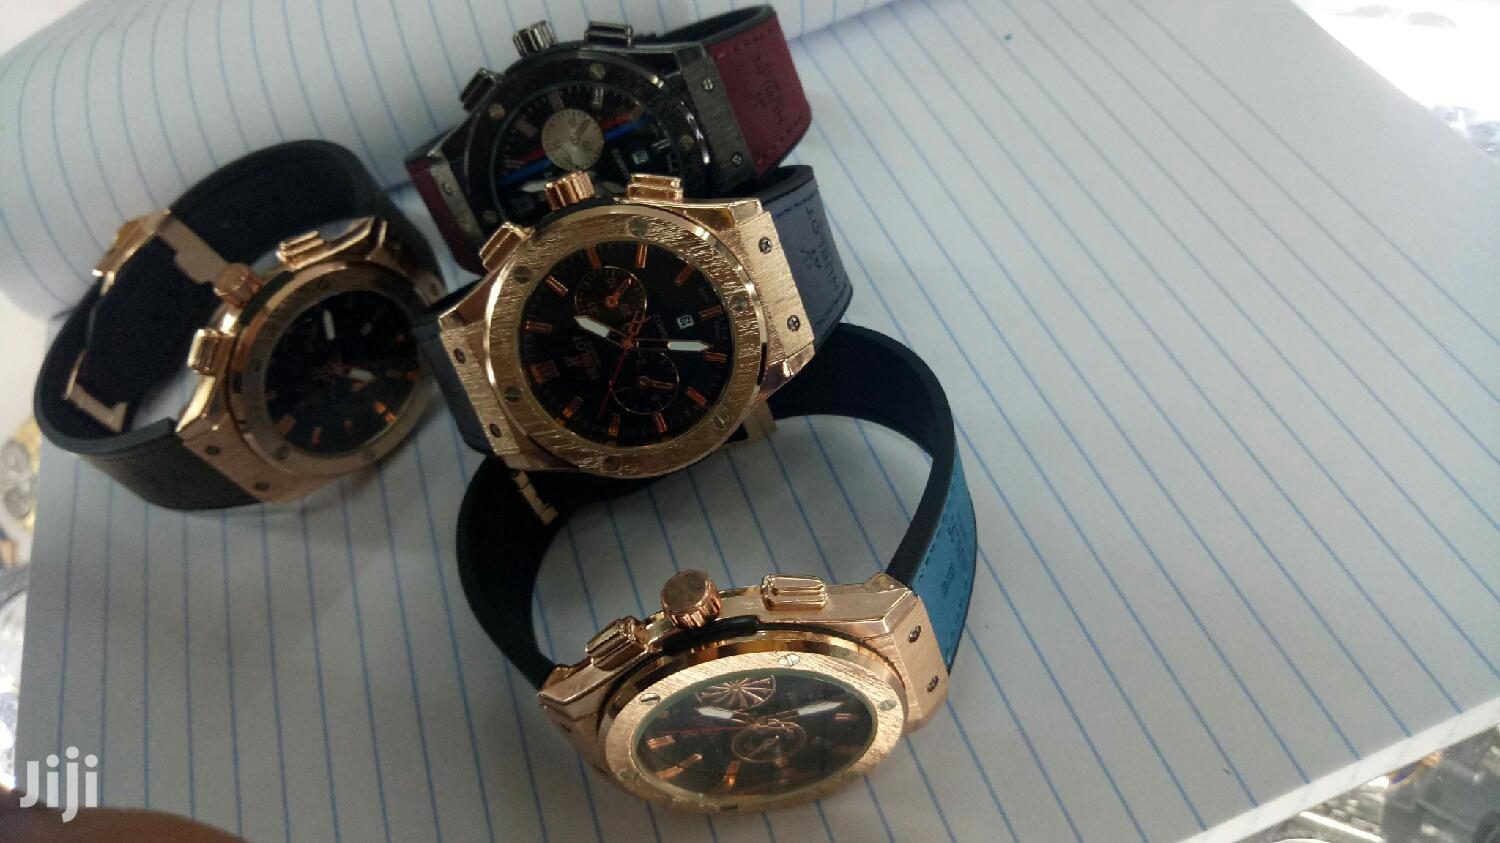 Hublot Watches | Watches for sale in Nairobi Central, Nairobi, Kenya